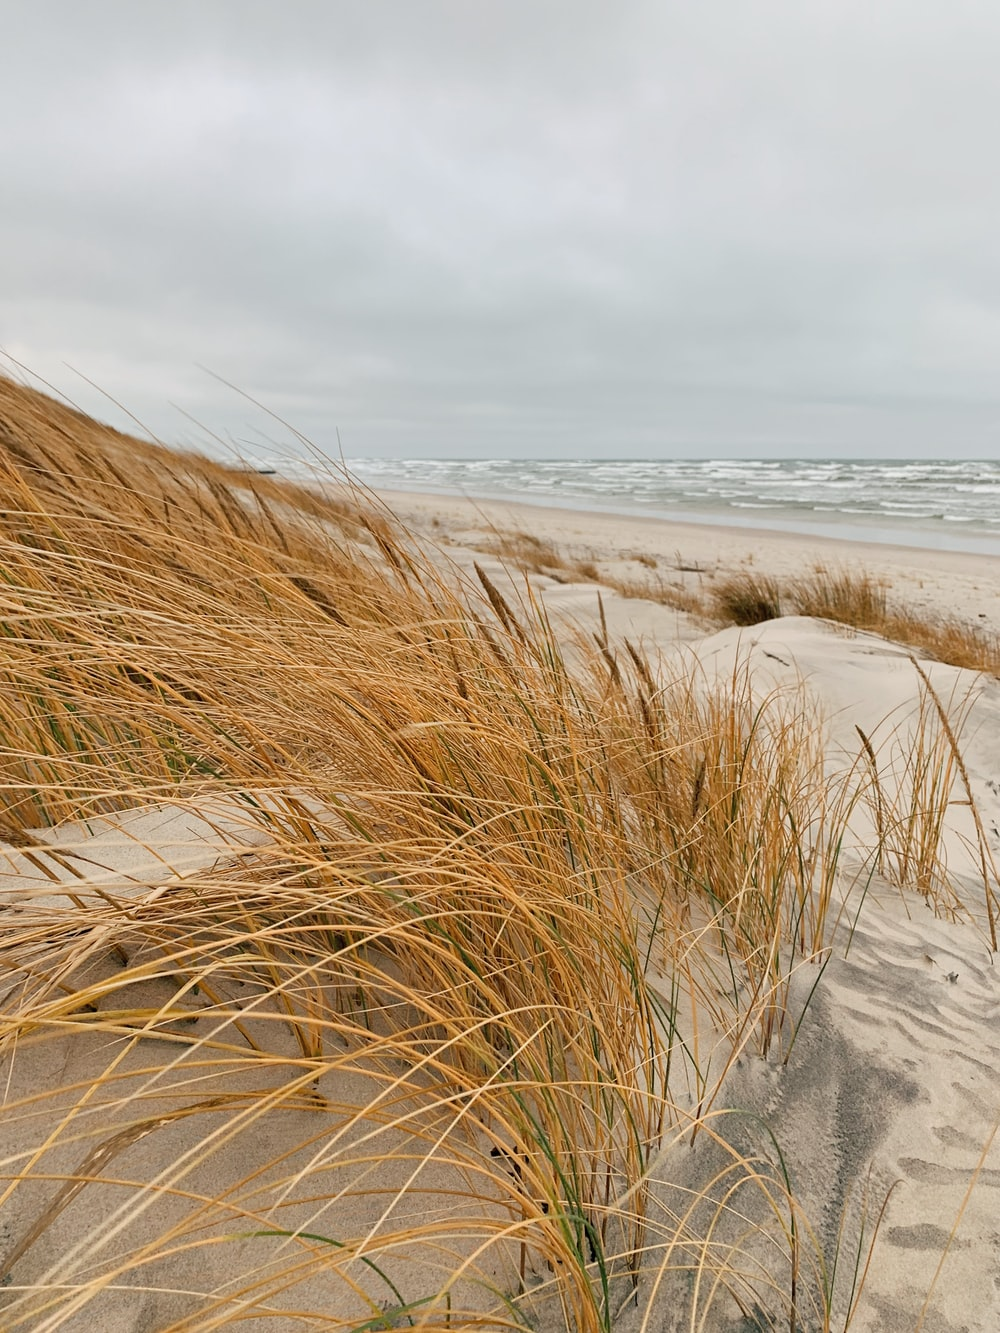 brown grass on gray sand near body of water during daytime